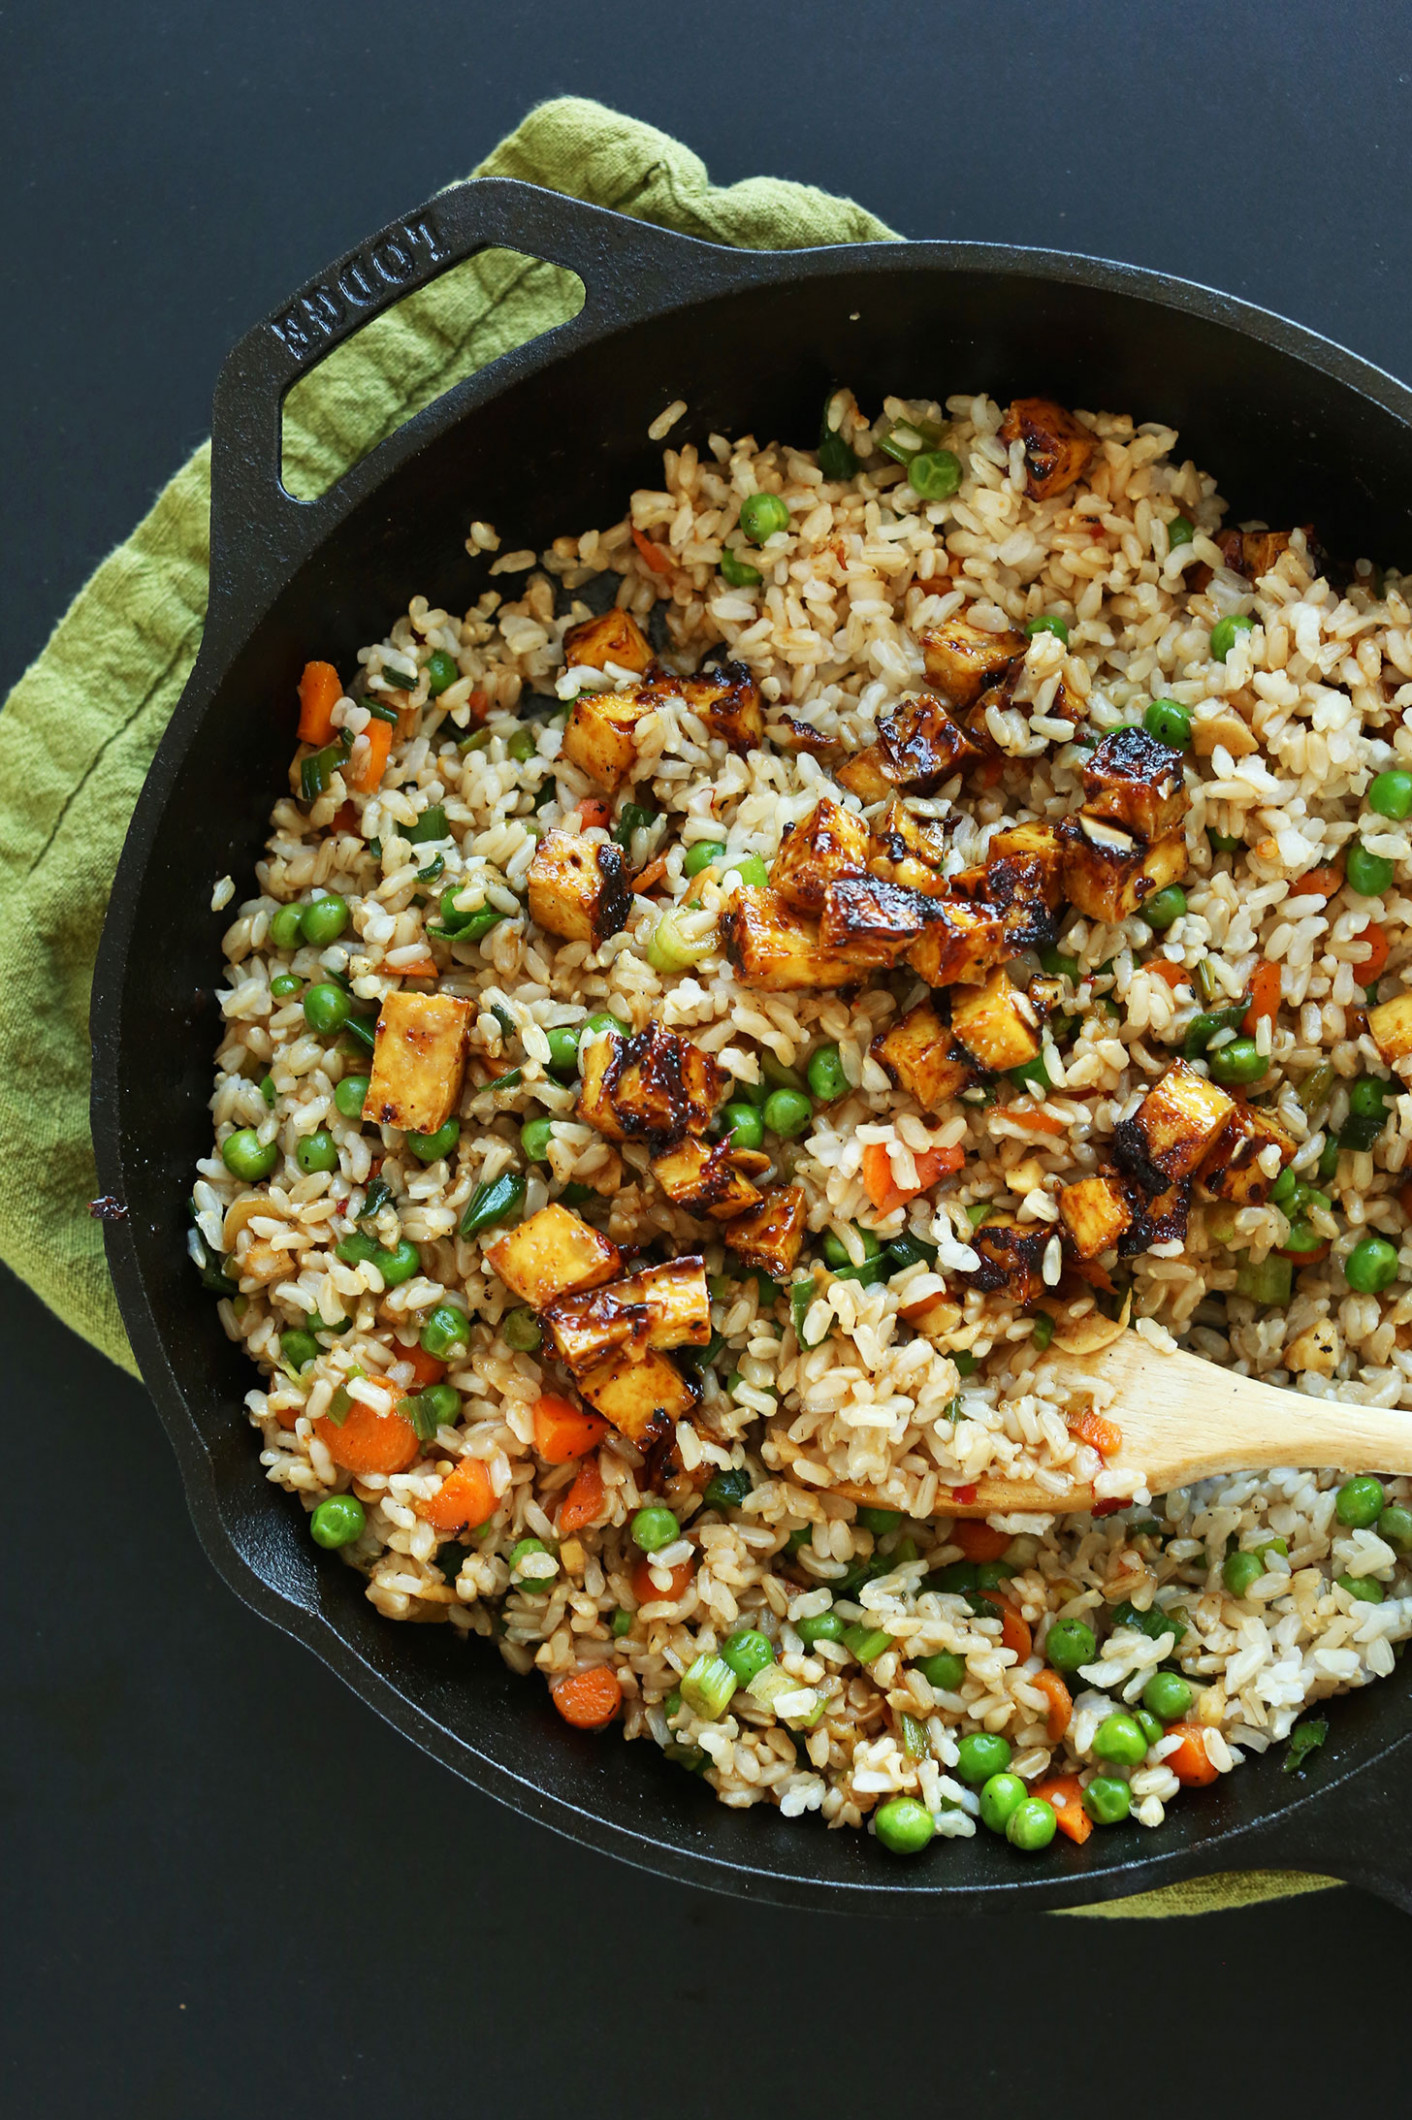 Brown Rice Recipe - Brown Rice With Veggies Recipe By ..